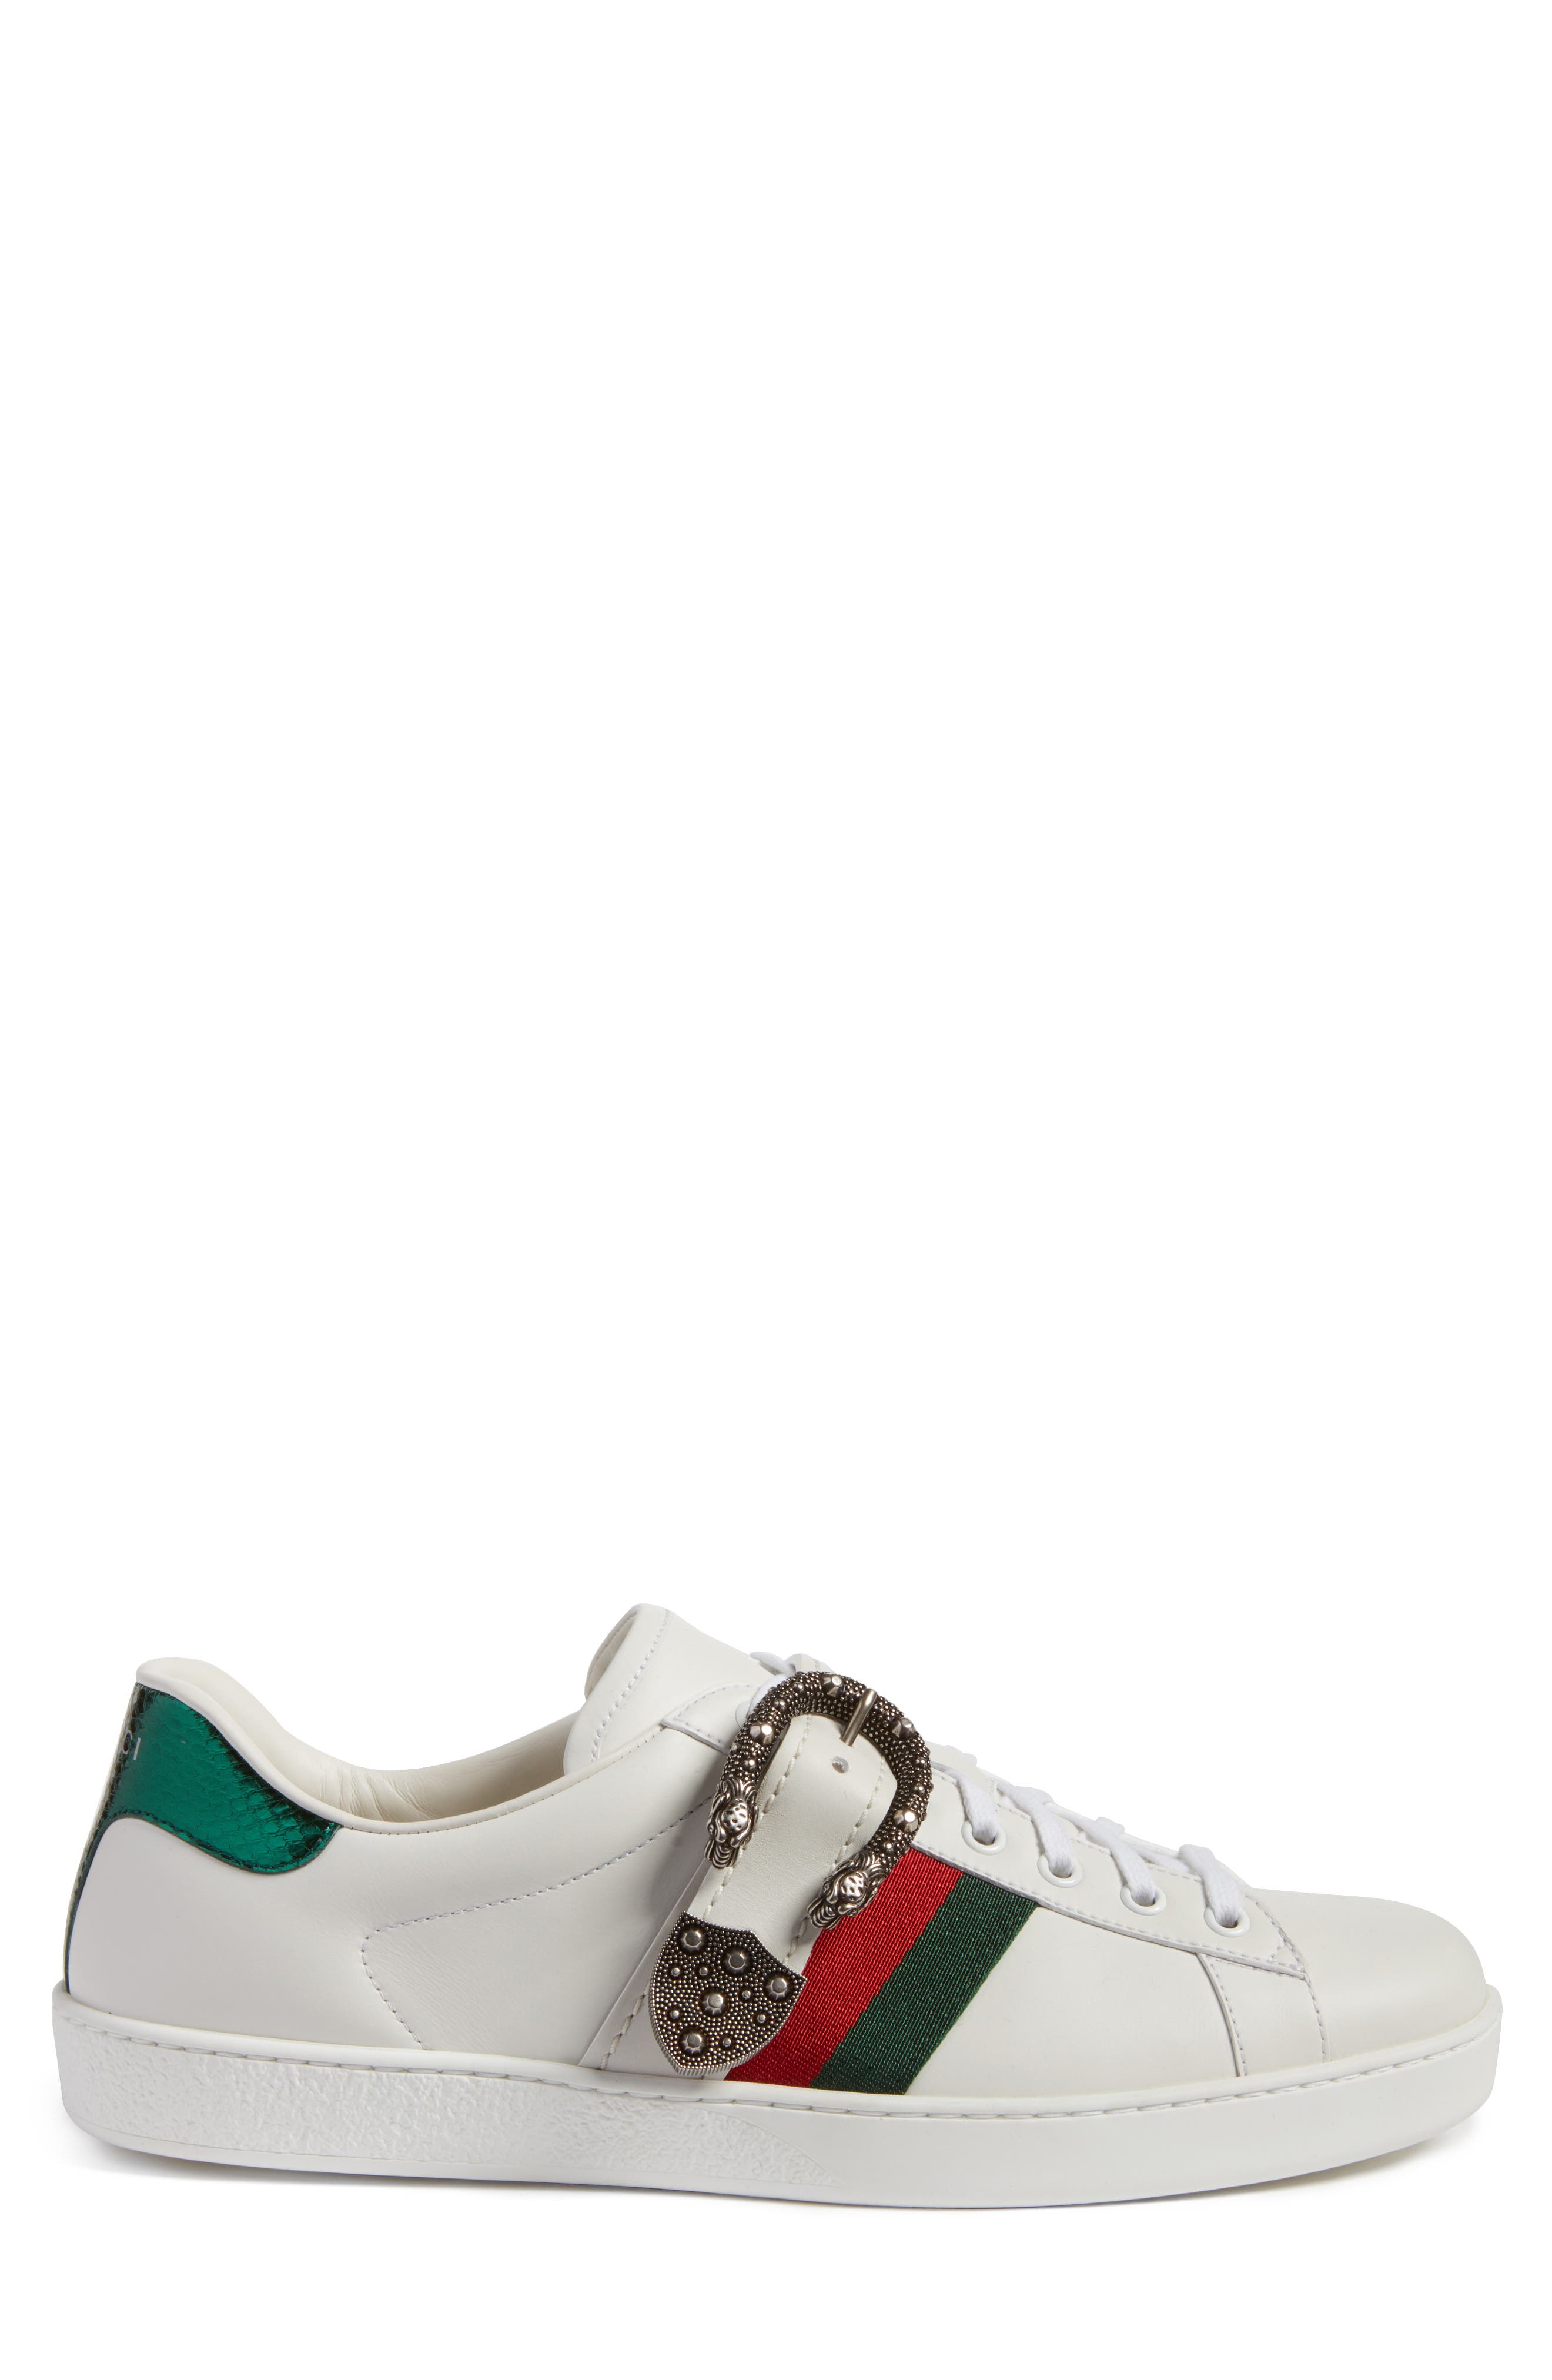 New Ace Dionysus Buckle Low Top Sneaker,                             Alternate thumbnail 3, color,                             White With Silver Hardware